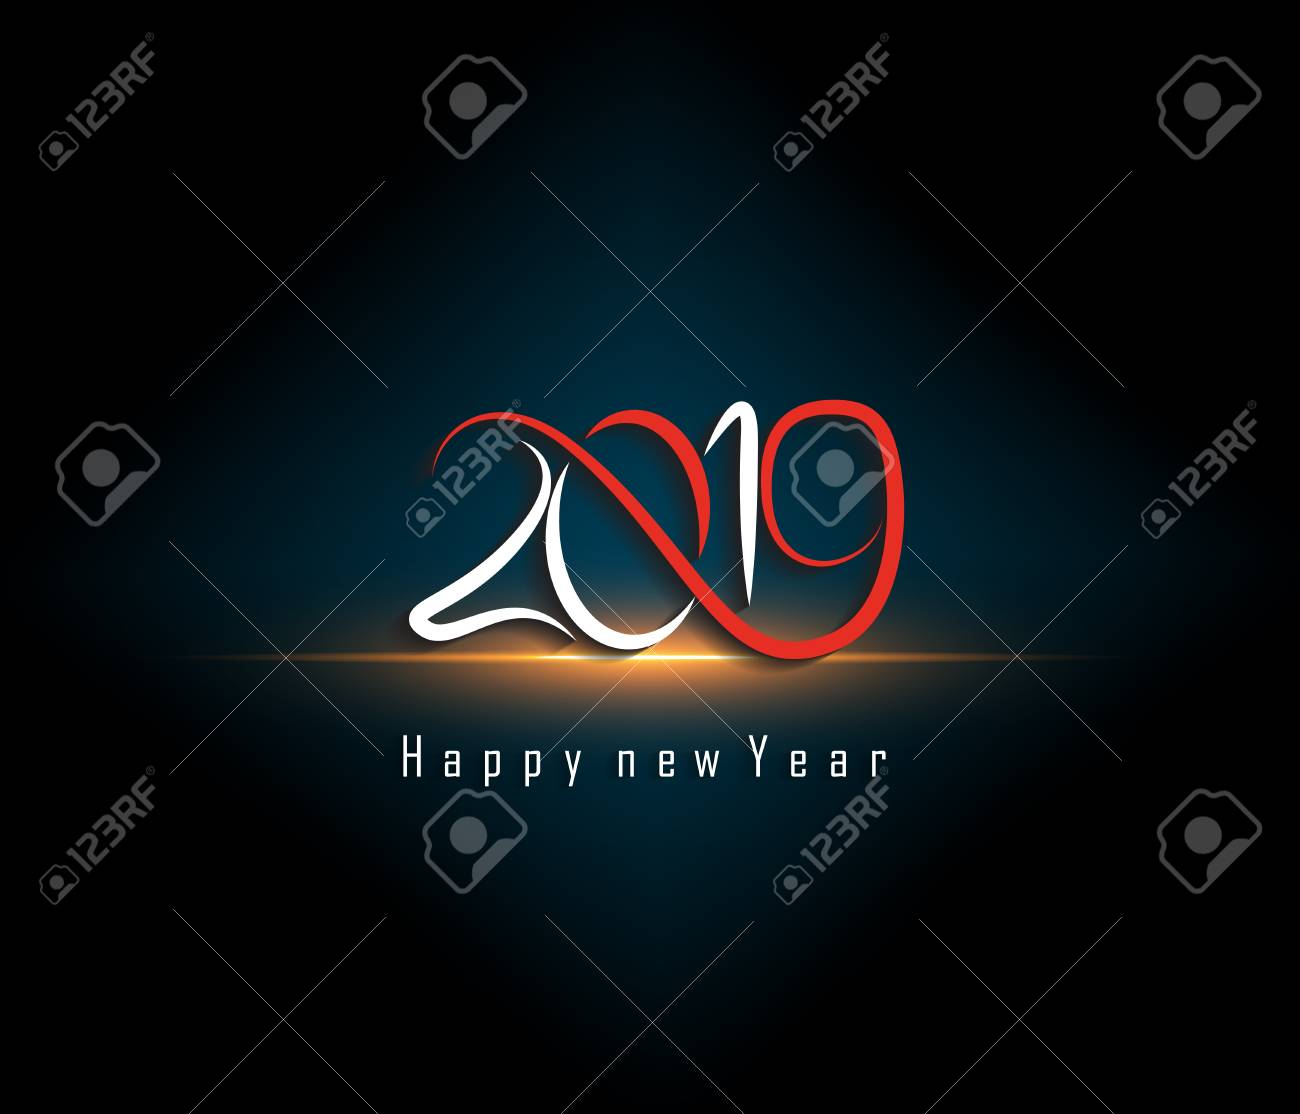 2019 happy new year greeting card vector design template stock vector 108379901